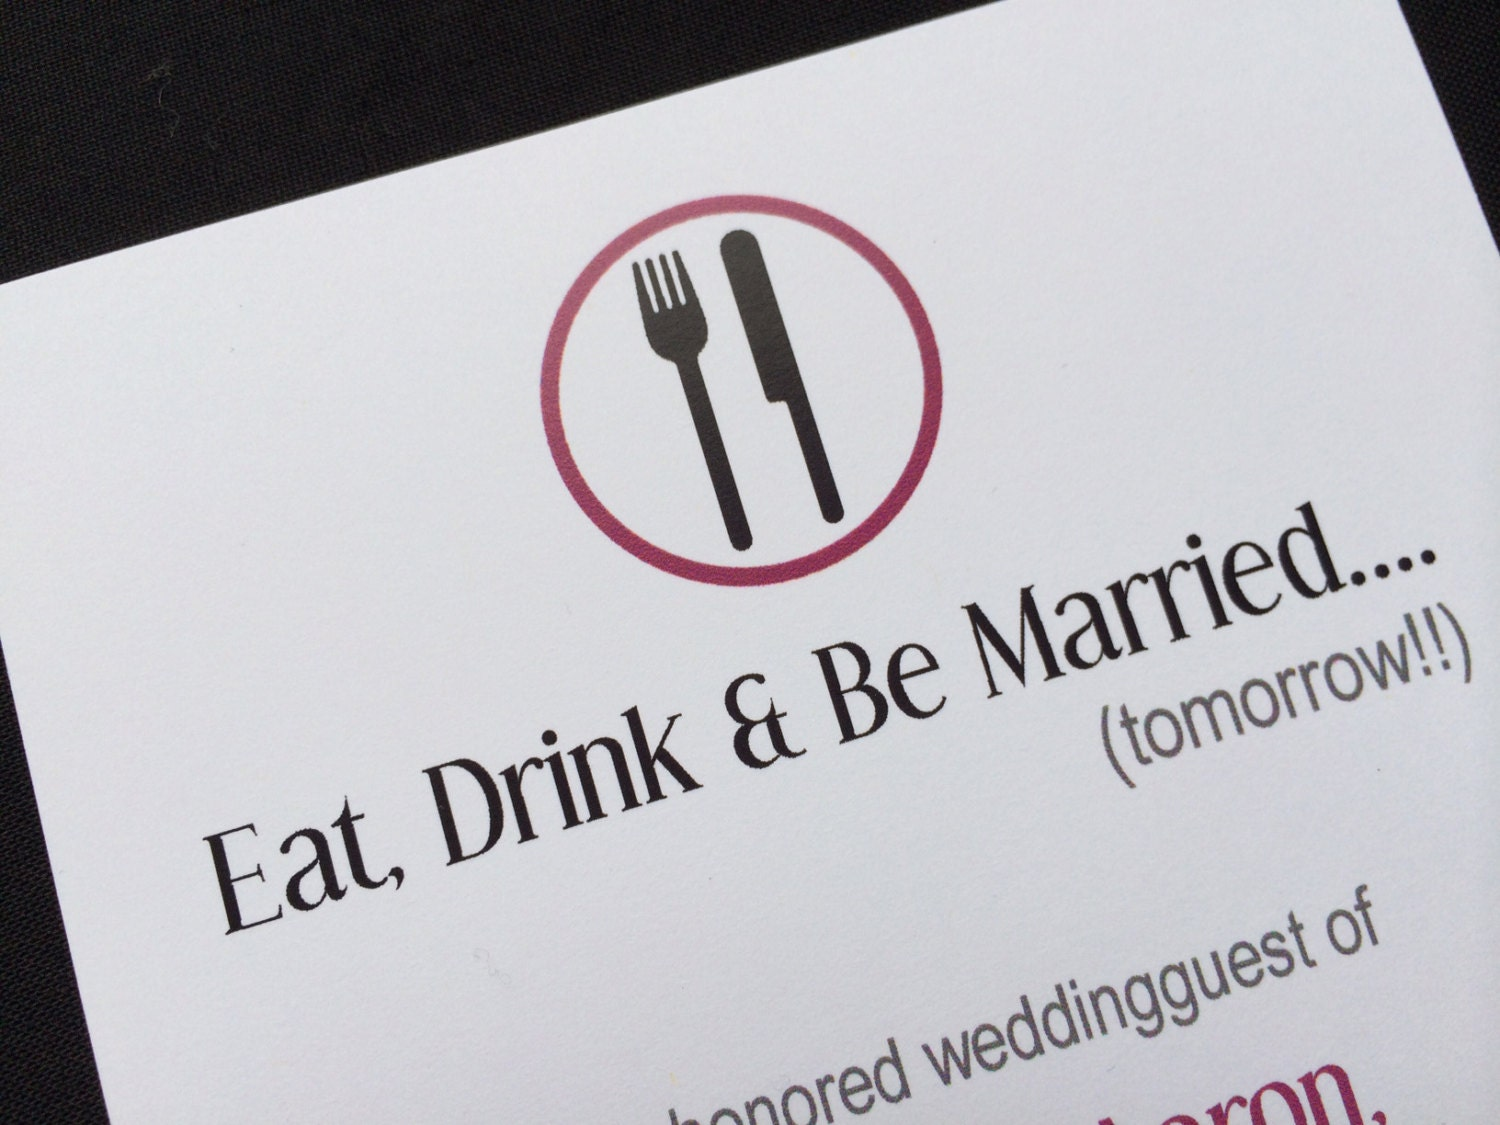 Eat Drink and Be Married... Tomorrow Rehearsal Dinner